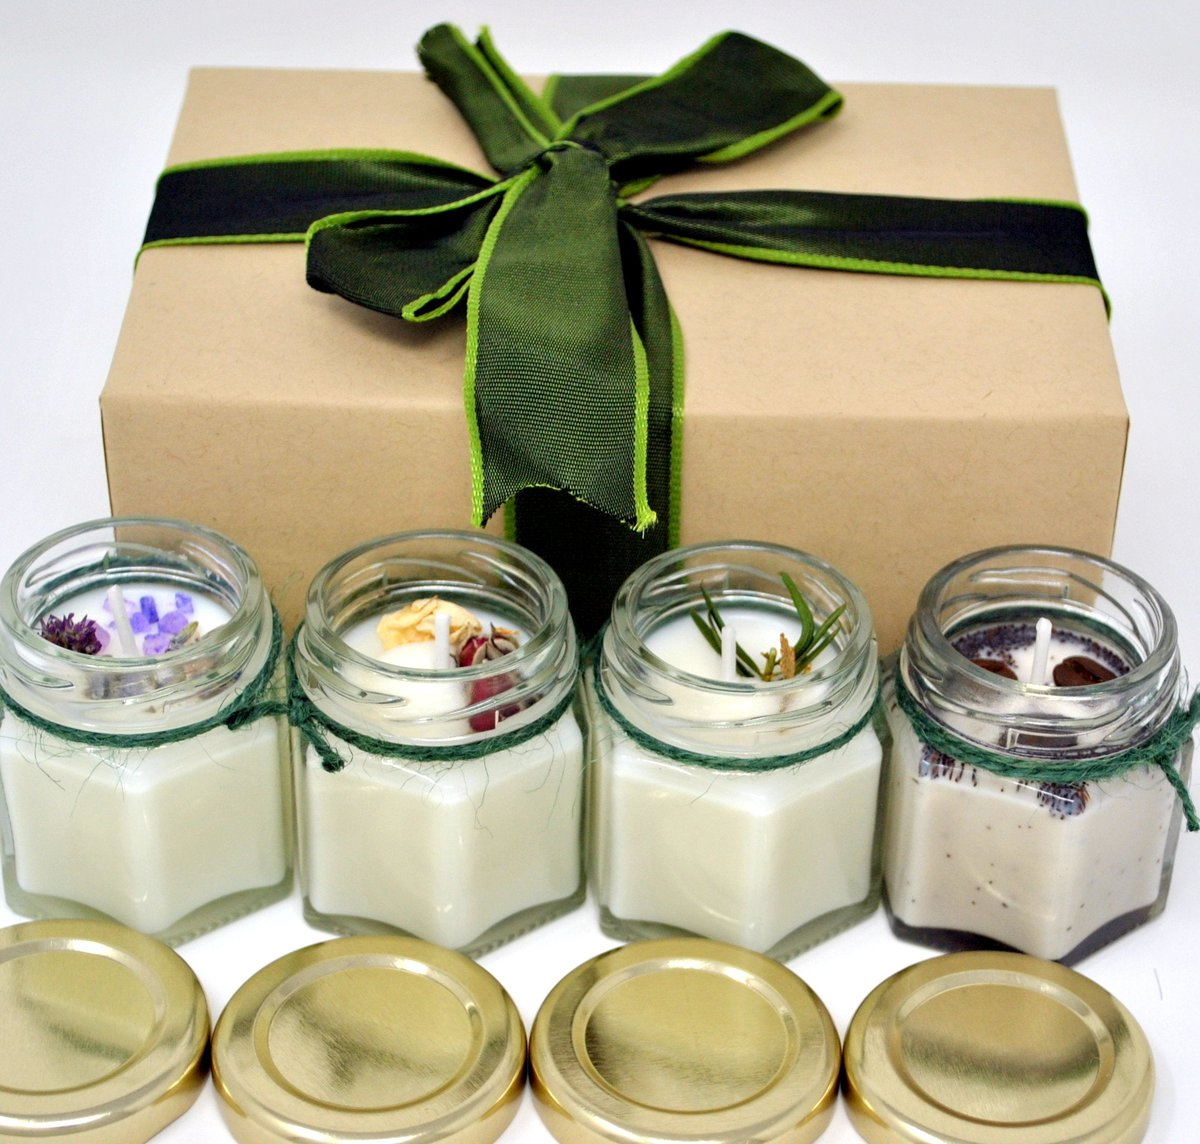 Excited to share the latest addition to my #etsy shop: Box Set of 4 Scented Soy Wax Candles. Lighten Your Mood. Vegan Jar Candles With Extra Essential Oil Thank You Gift Box Isolation Relaxation  #white #soy #bedroom #scentedcandles #soywaxcandle